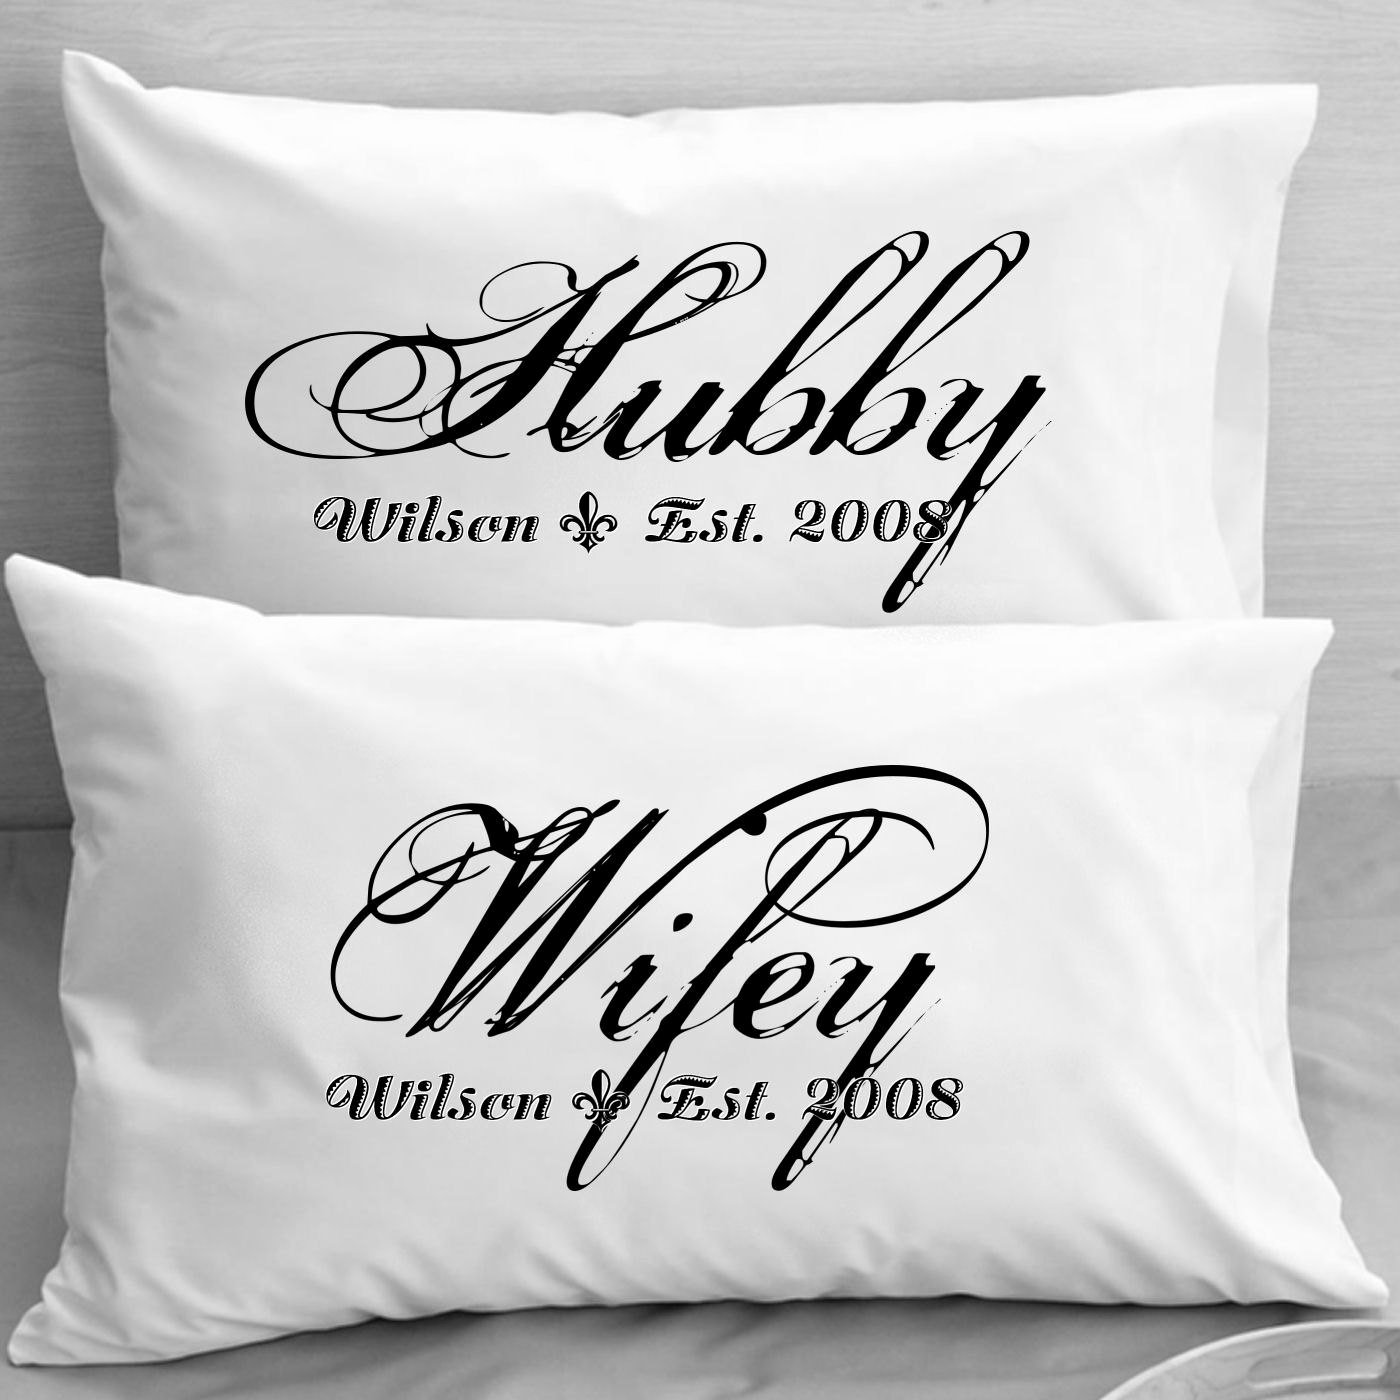 10 Cute 2Nd Wedding Anniversary Gift Ideas For Her 2nd wedding anniversary gift ideas for him inspirational couples 2 2020